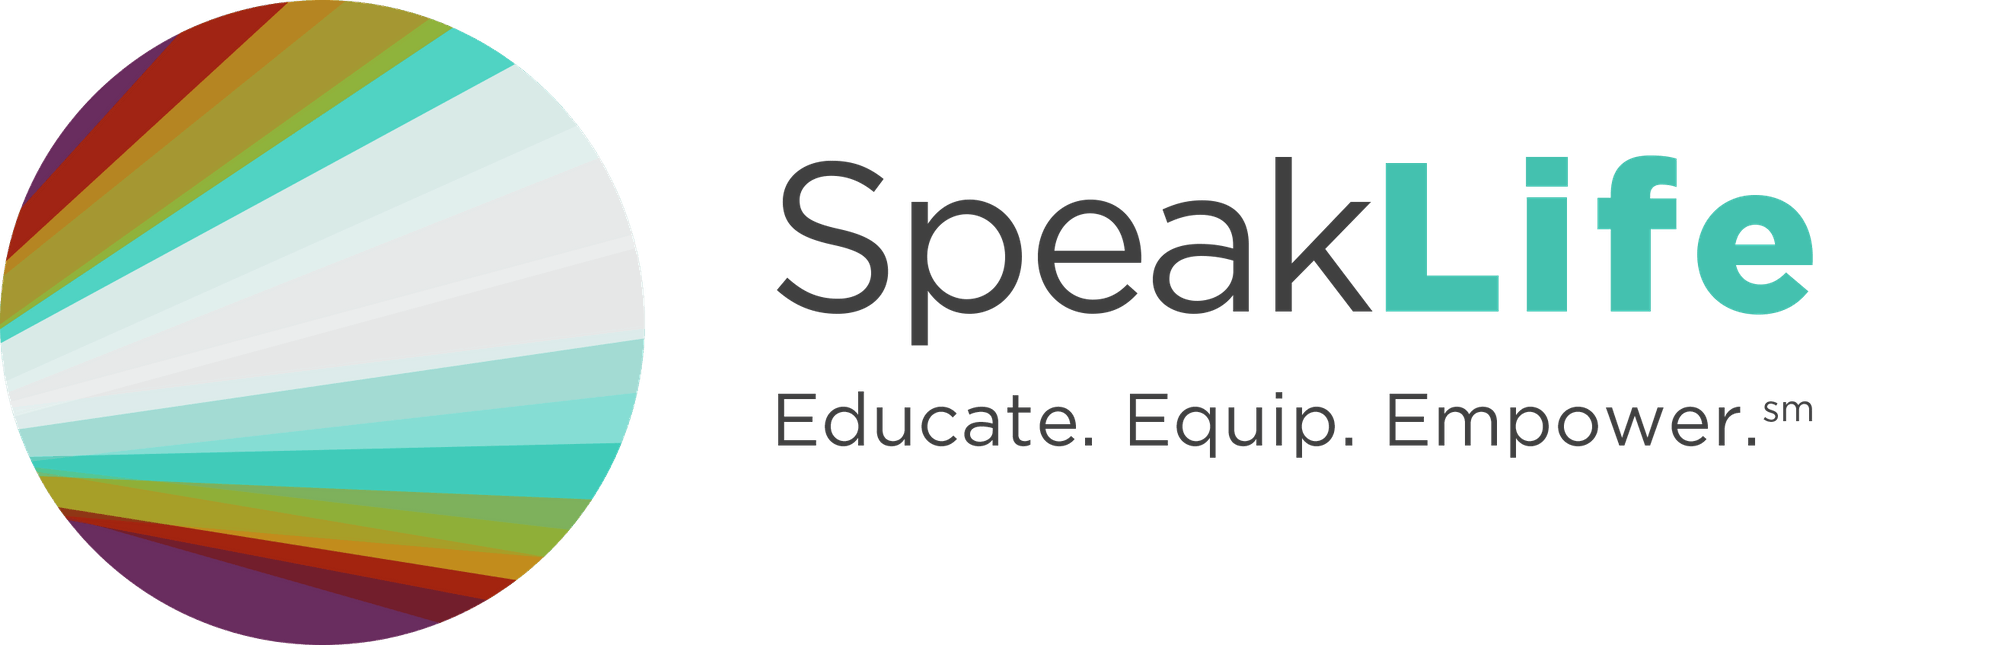 SpeakLife - SmarterU LMS - Blended Learning